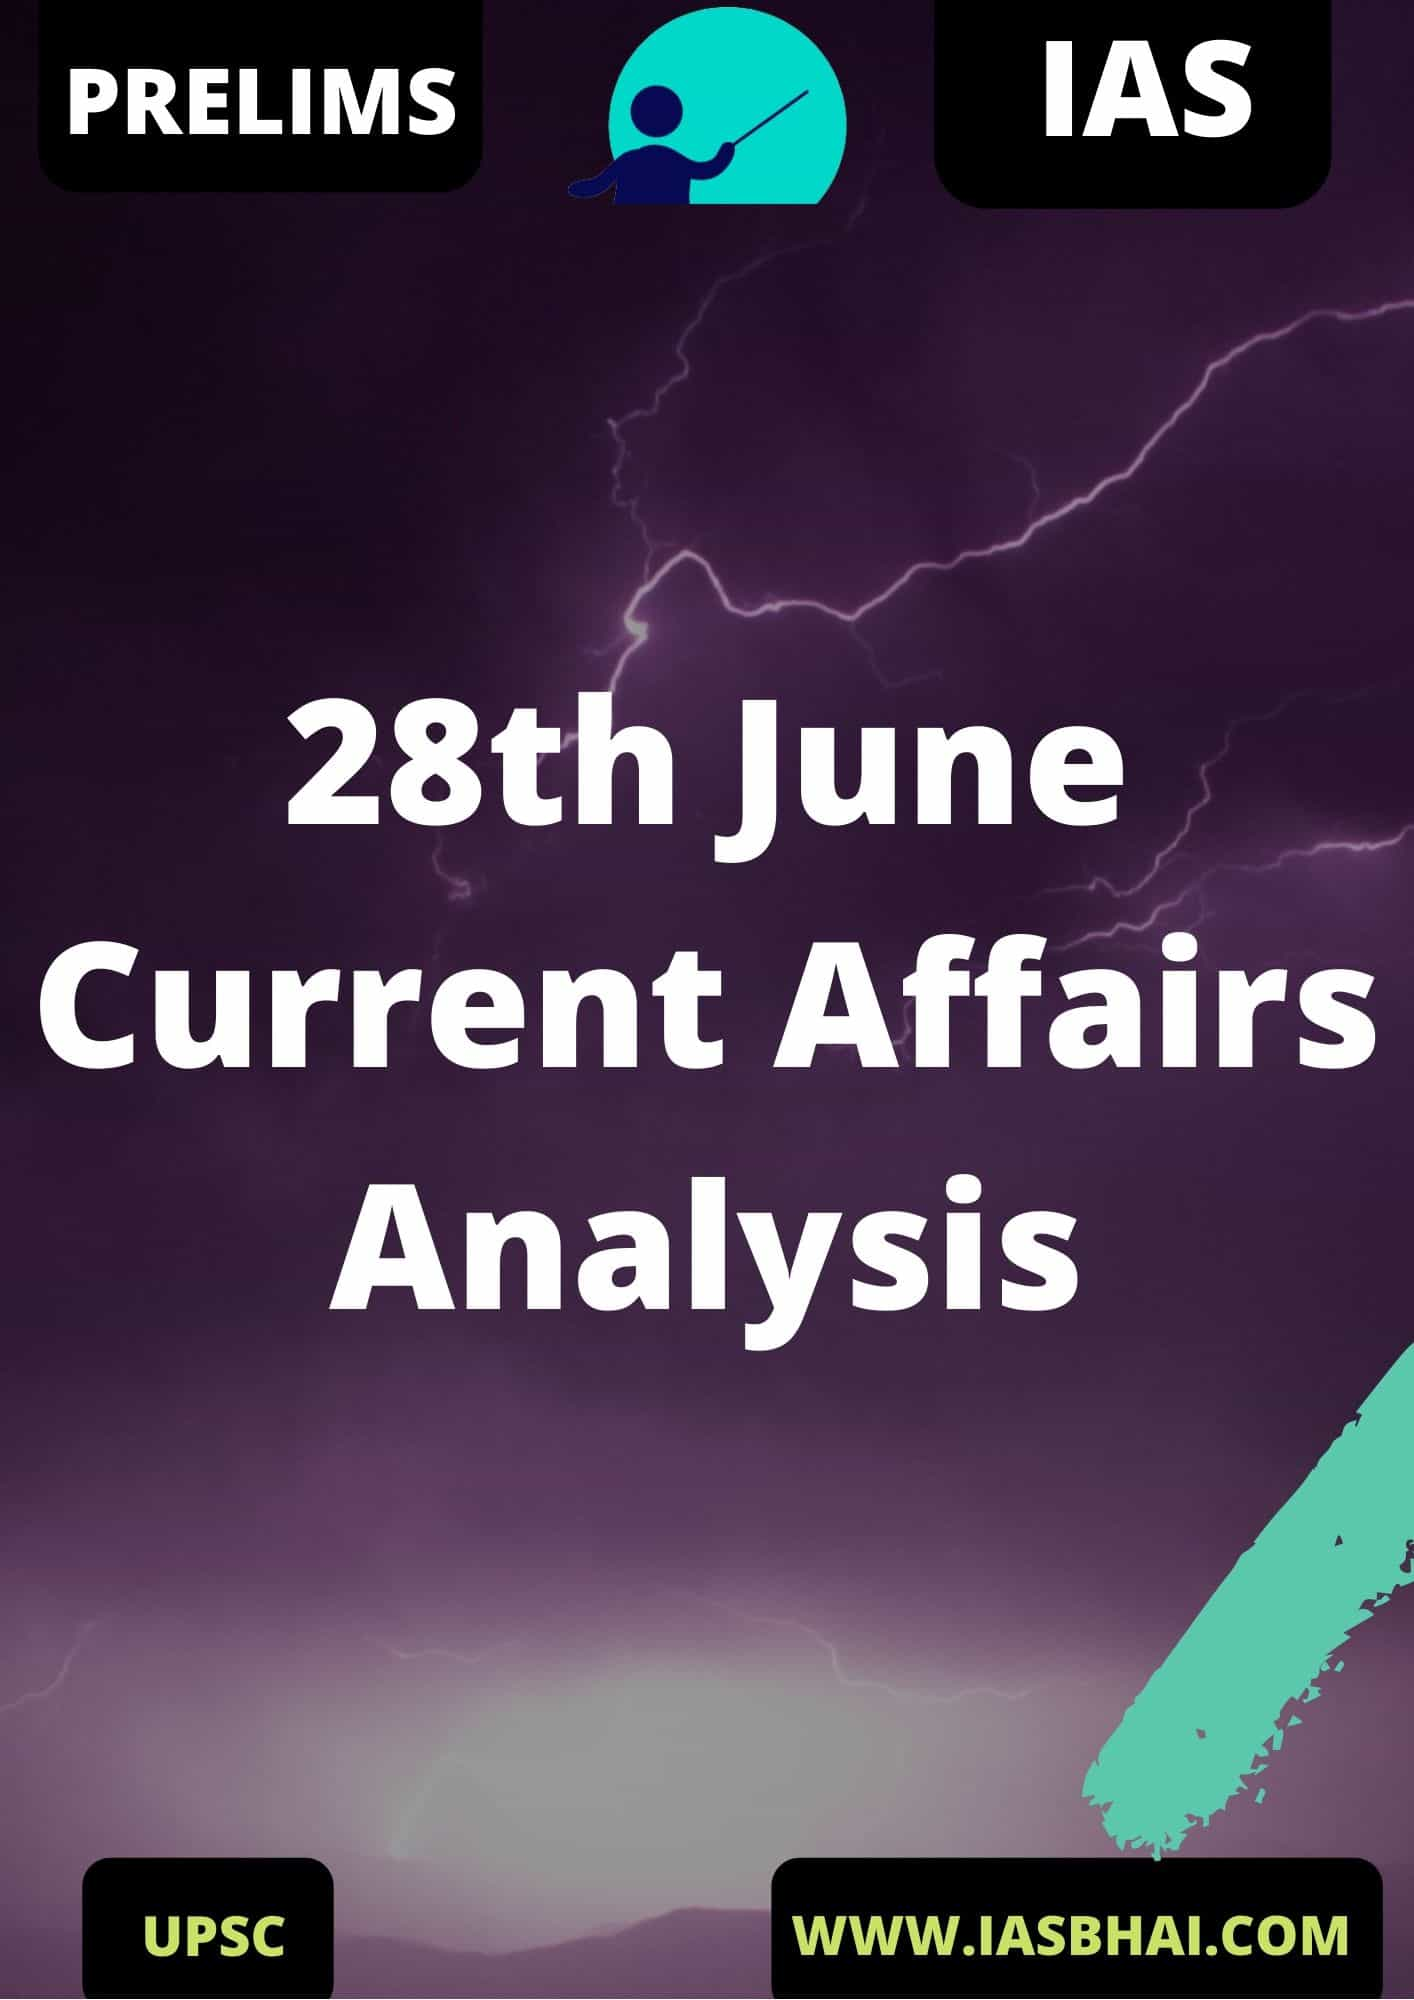 28th June Current Affairs News Analysis Prelims & Mains 2020